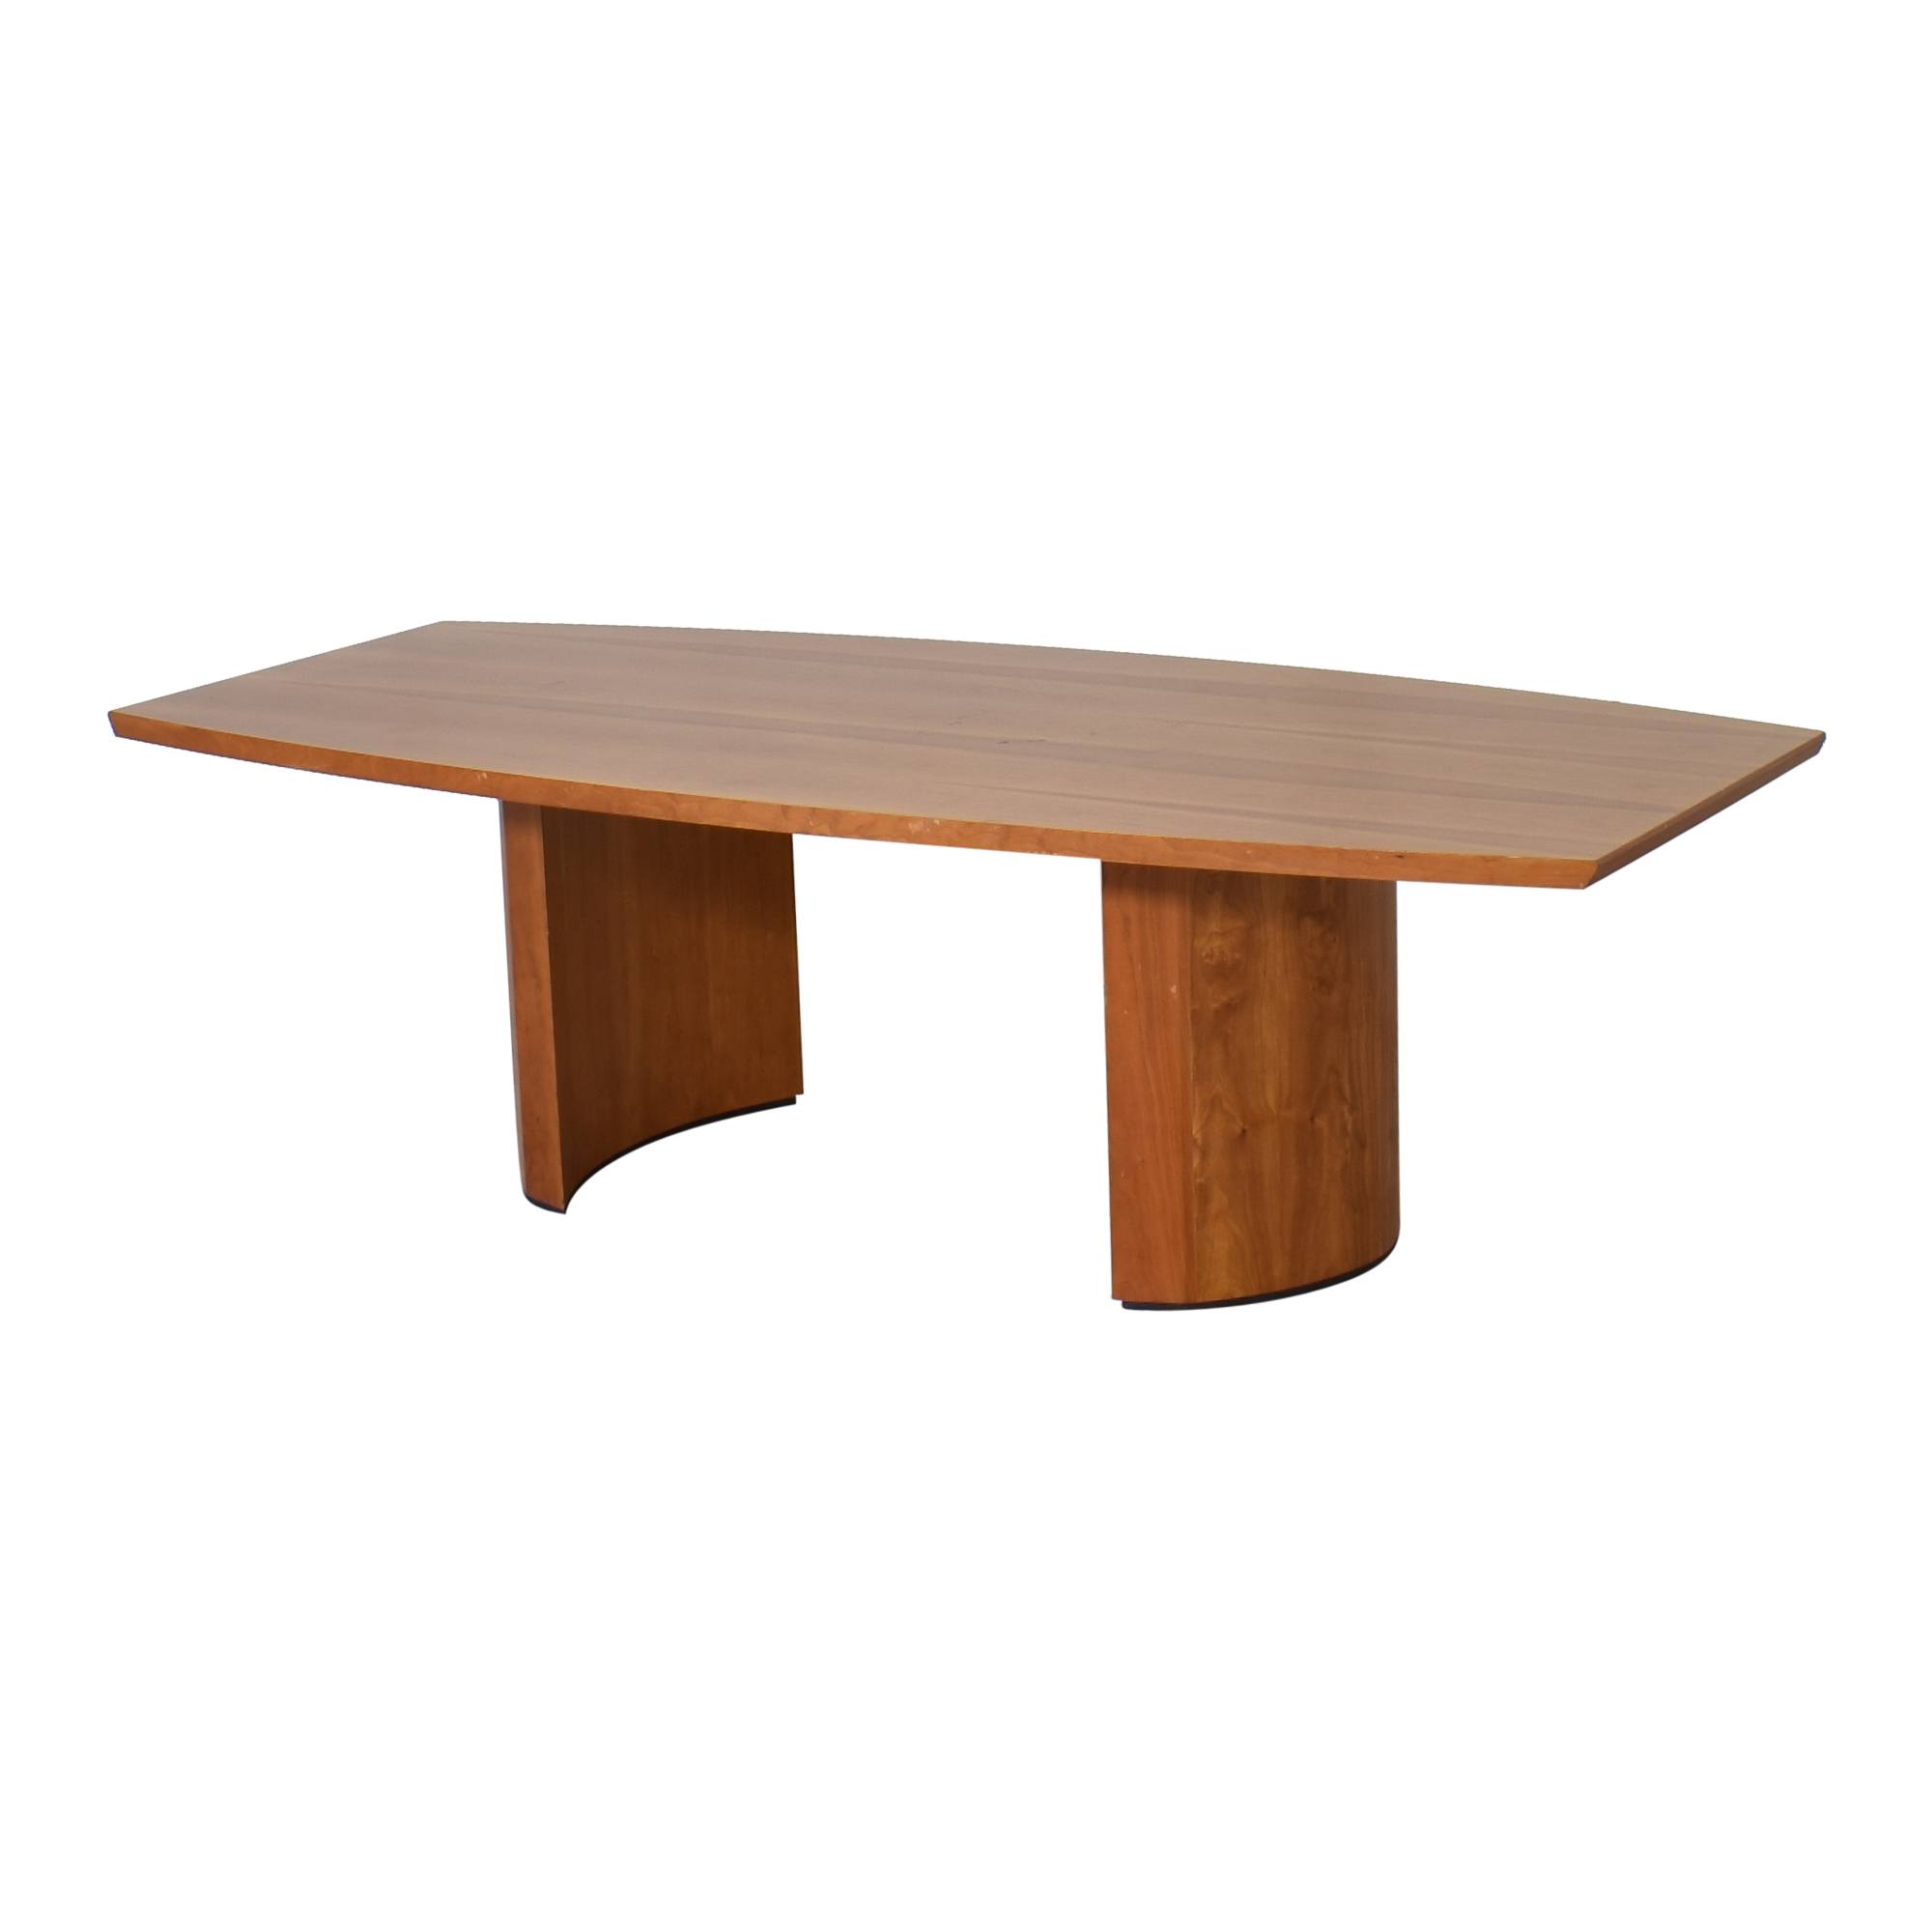 The Conran Shop The Conran Shop Two Pedestal Dining Table Dinner Tables